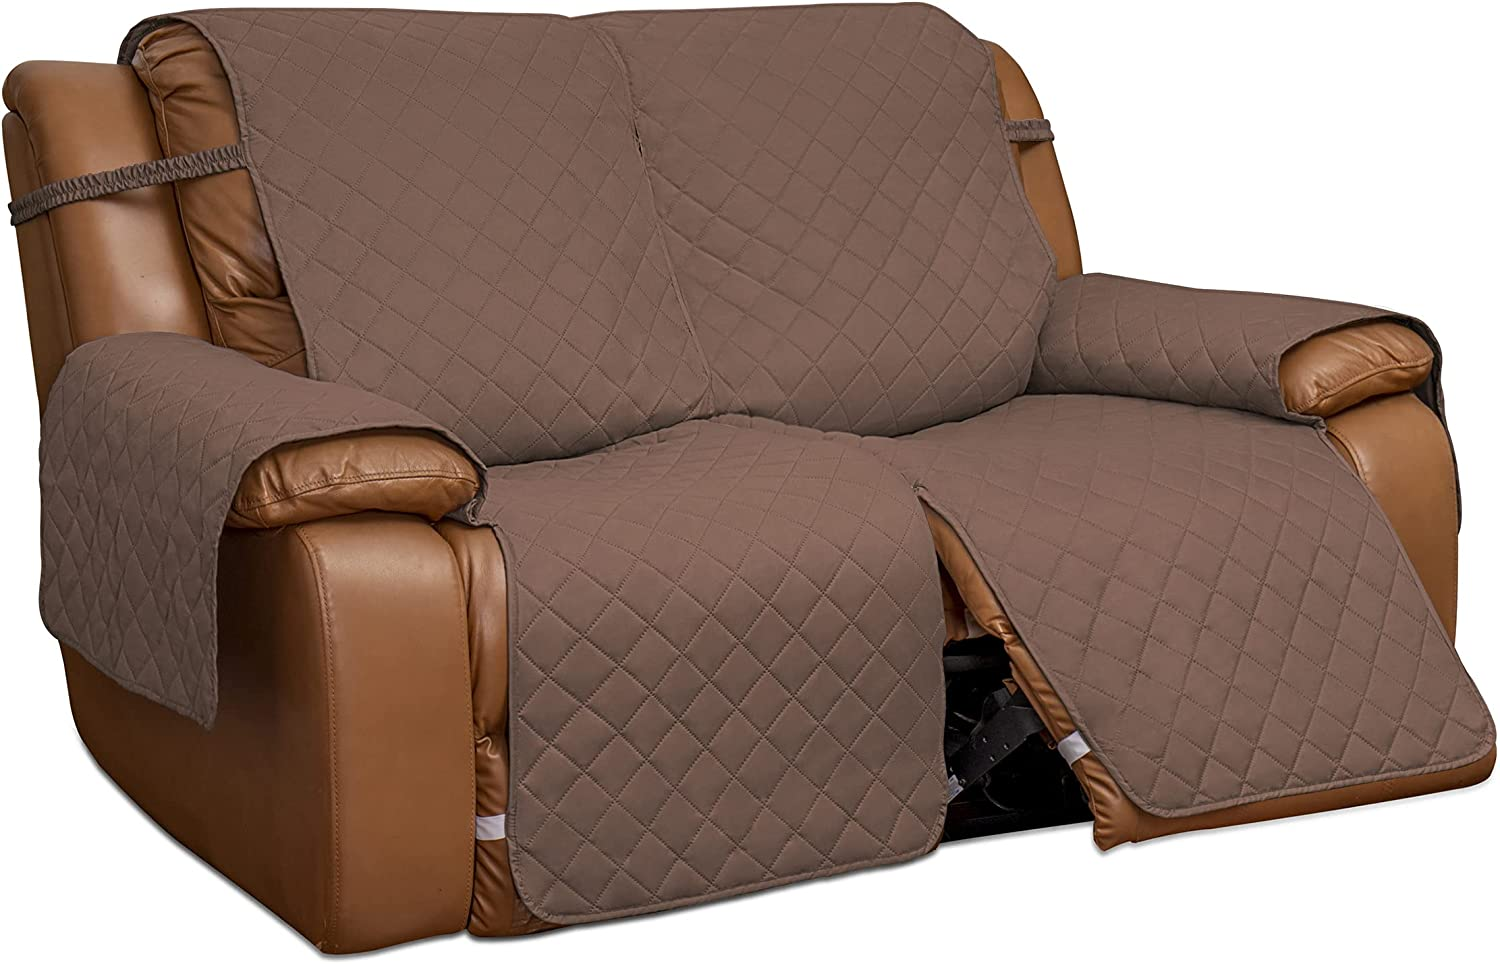 Easy-Going Loveseat Recliner Cover, Reversible Couch Cover for Double Recliner, Split Sofa Cover for Each Seat, Furniture Protector with Elastic Straps for Kids, Dogs, Pets(2 Seater ,Brown/Beige)